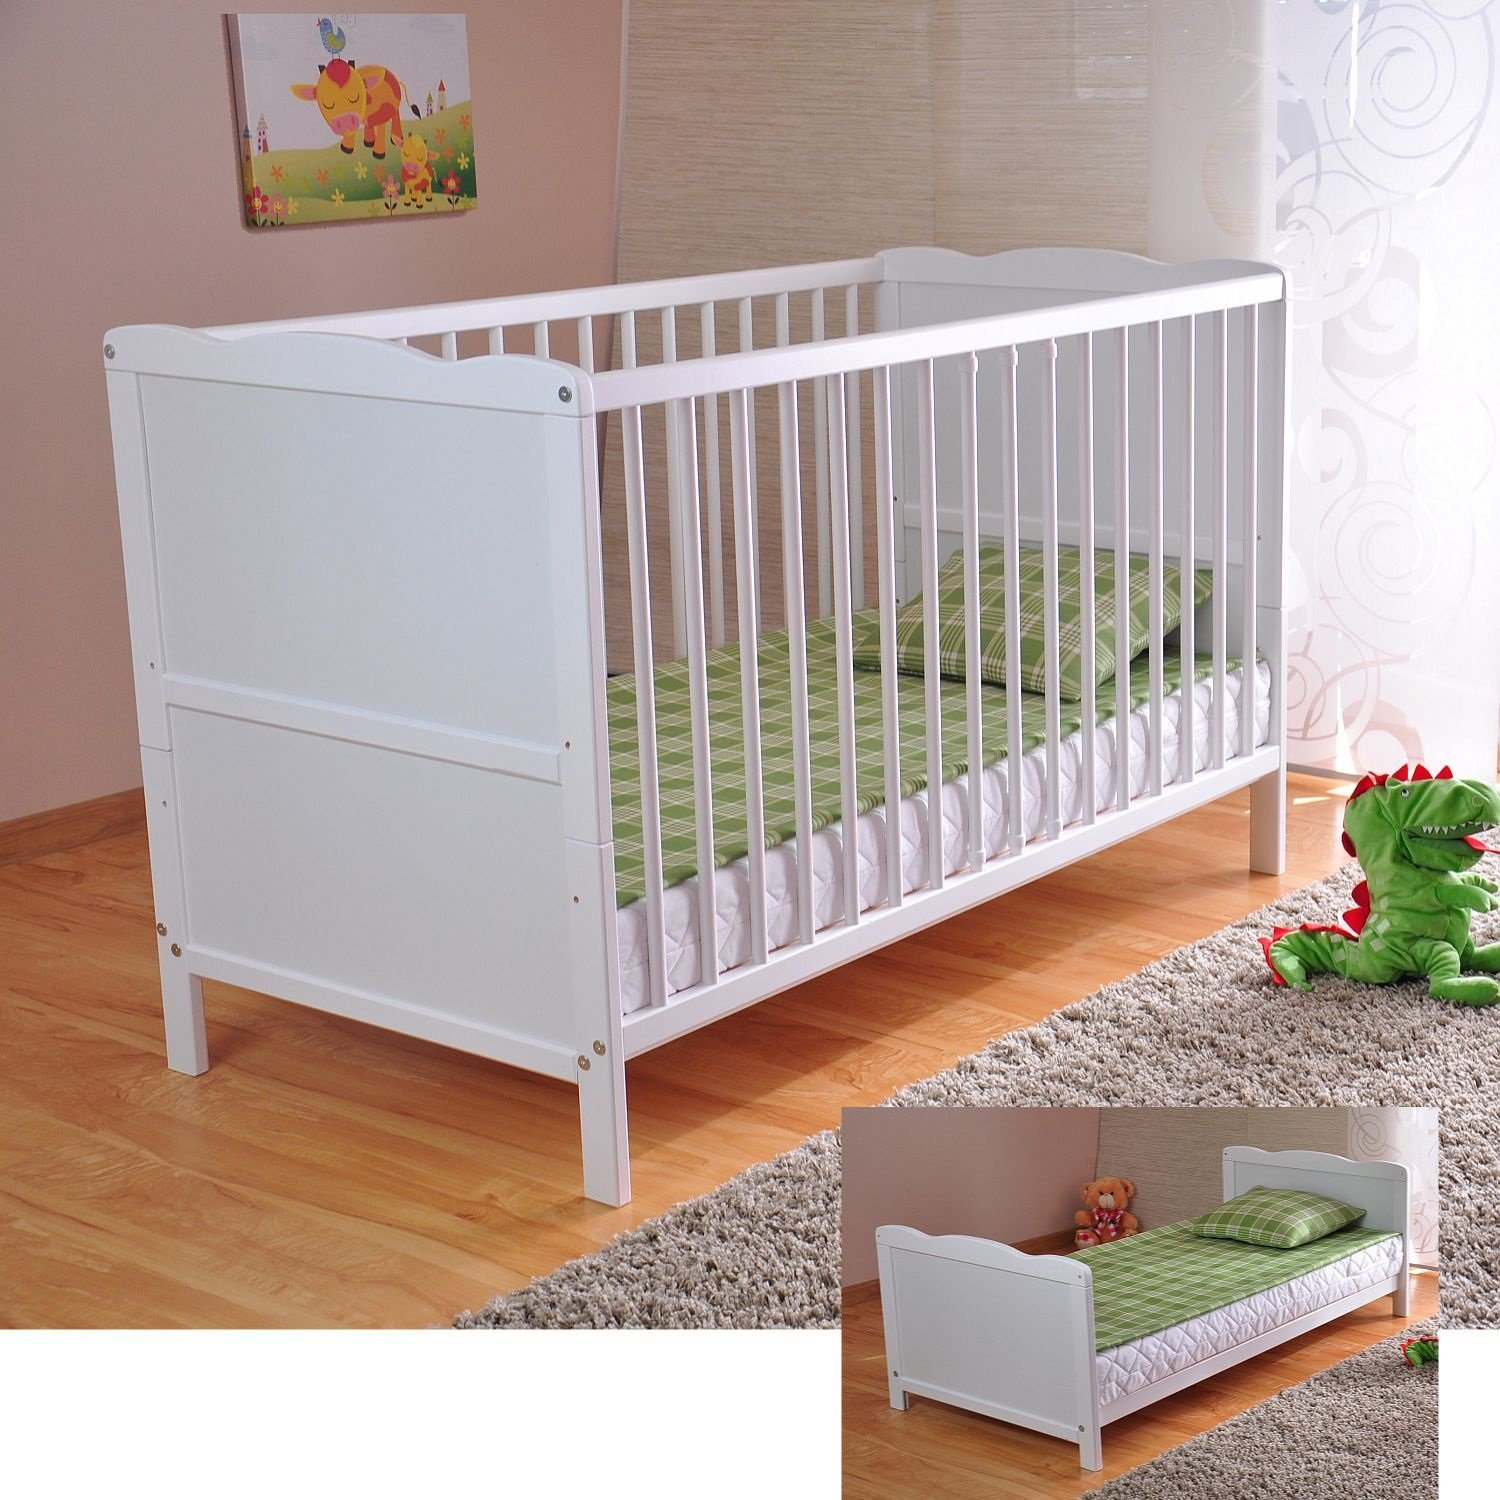 COT BED/JUNIOR BED IN LUXURY WHITE FINISH WITH FREE MATTRESS (140 x 70cm) B4Beds©